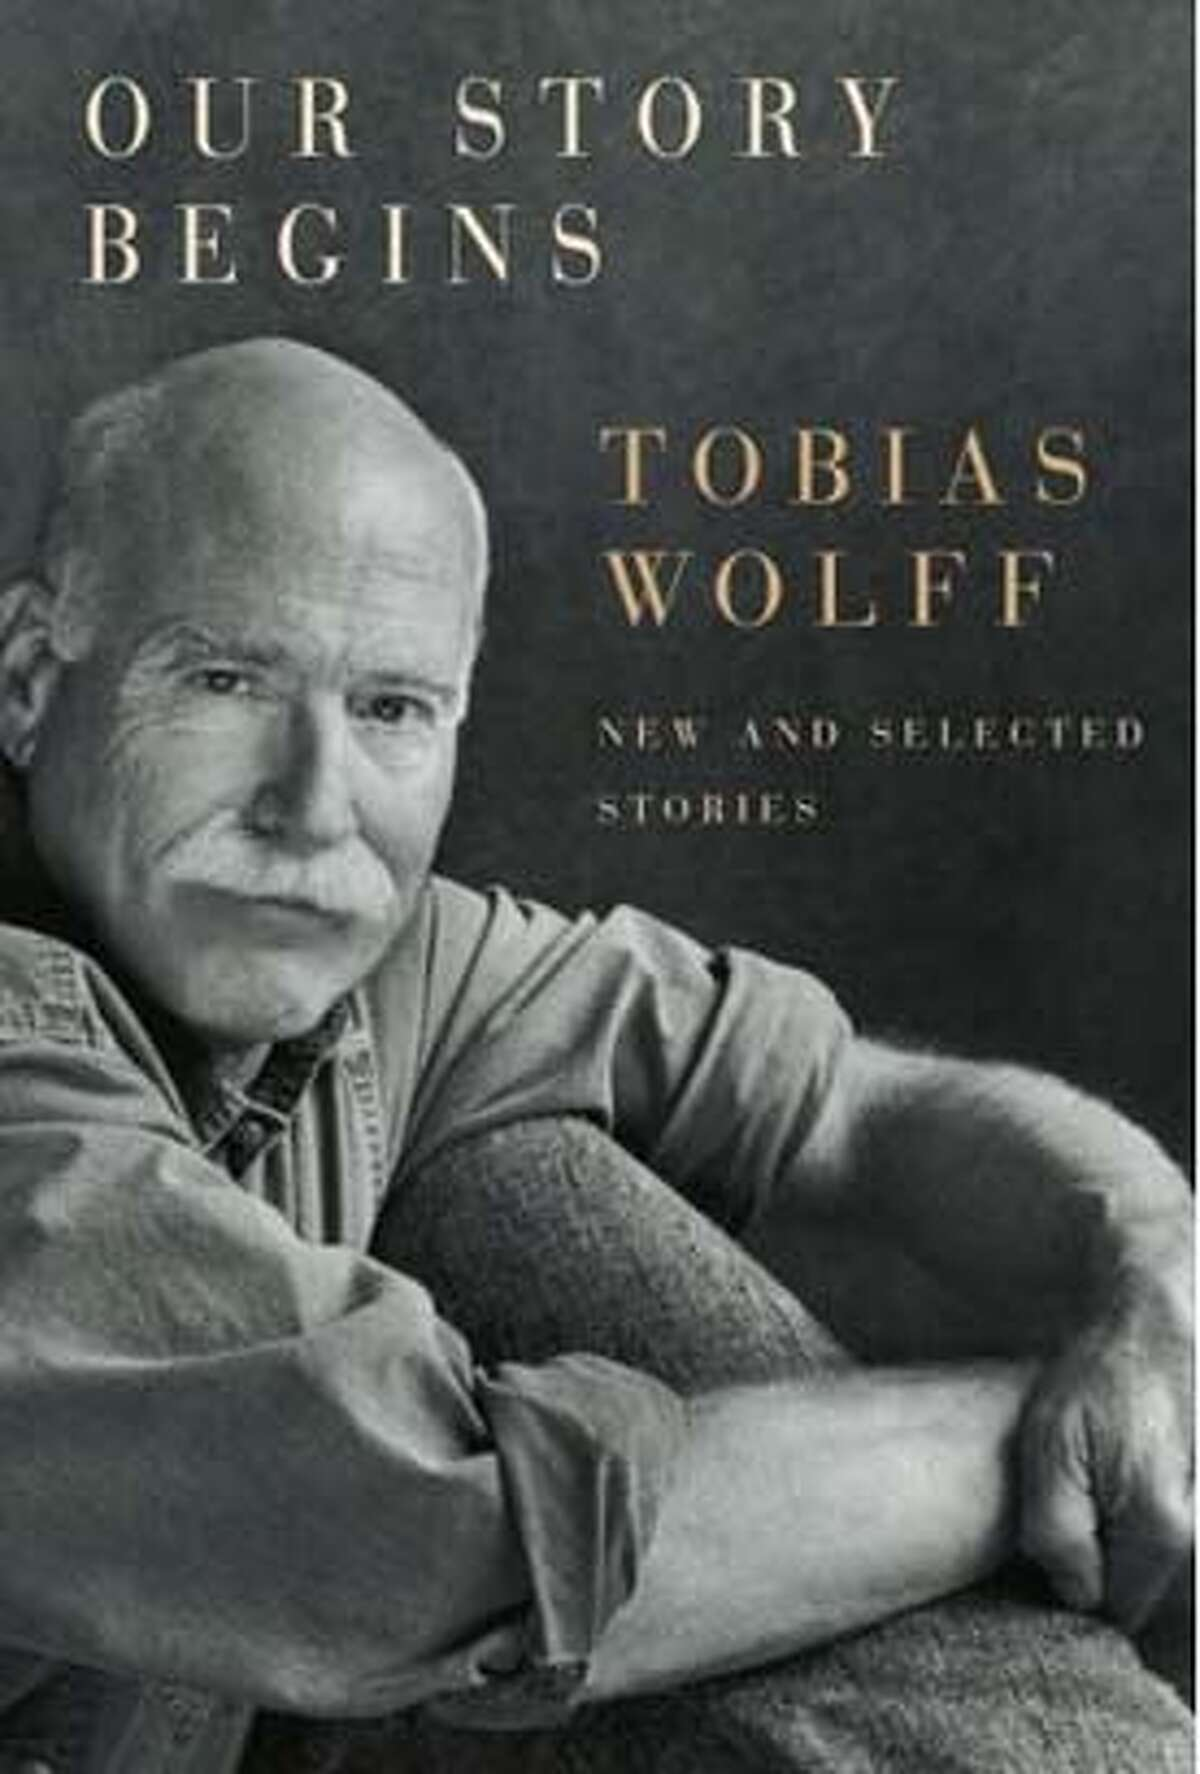 Our Story Begins: New and Selected Stories (Hardcover) by Tobias Wolff (Author)